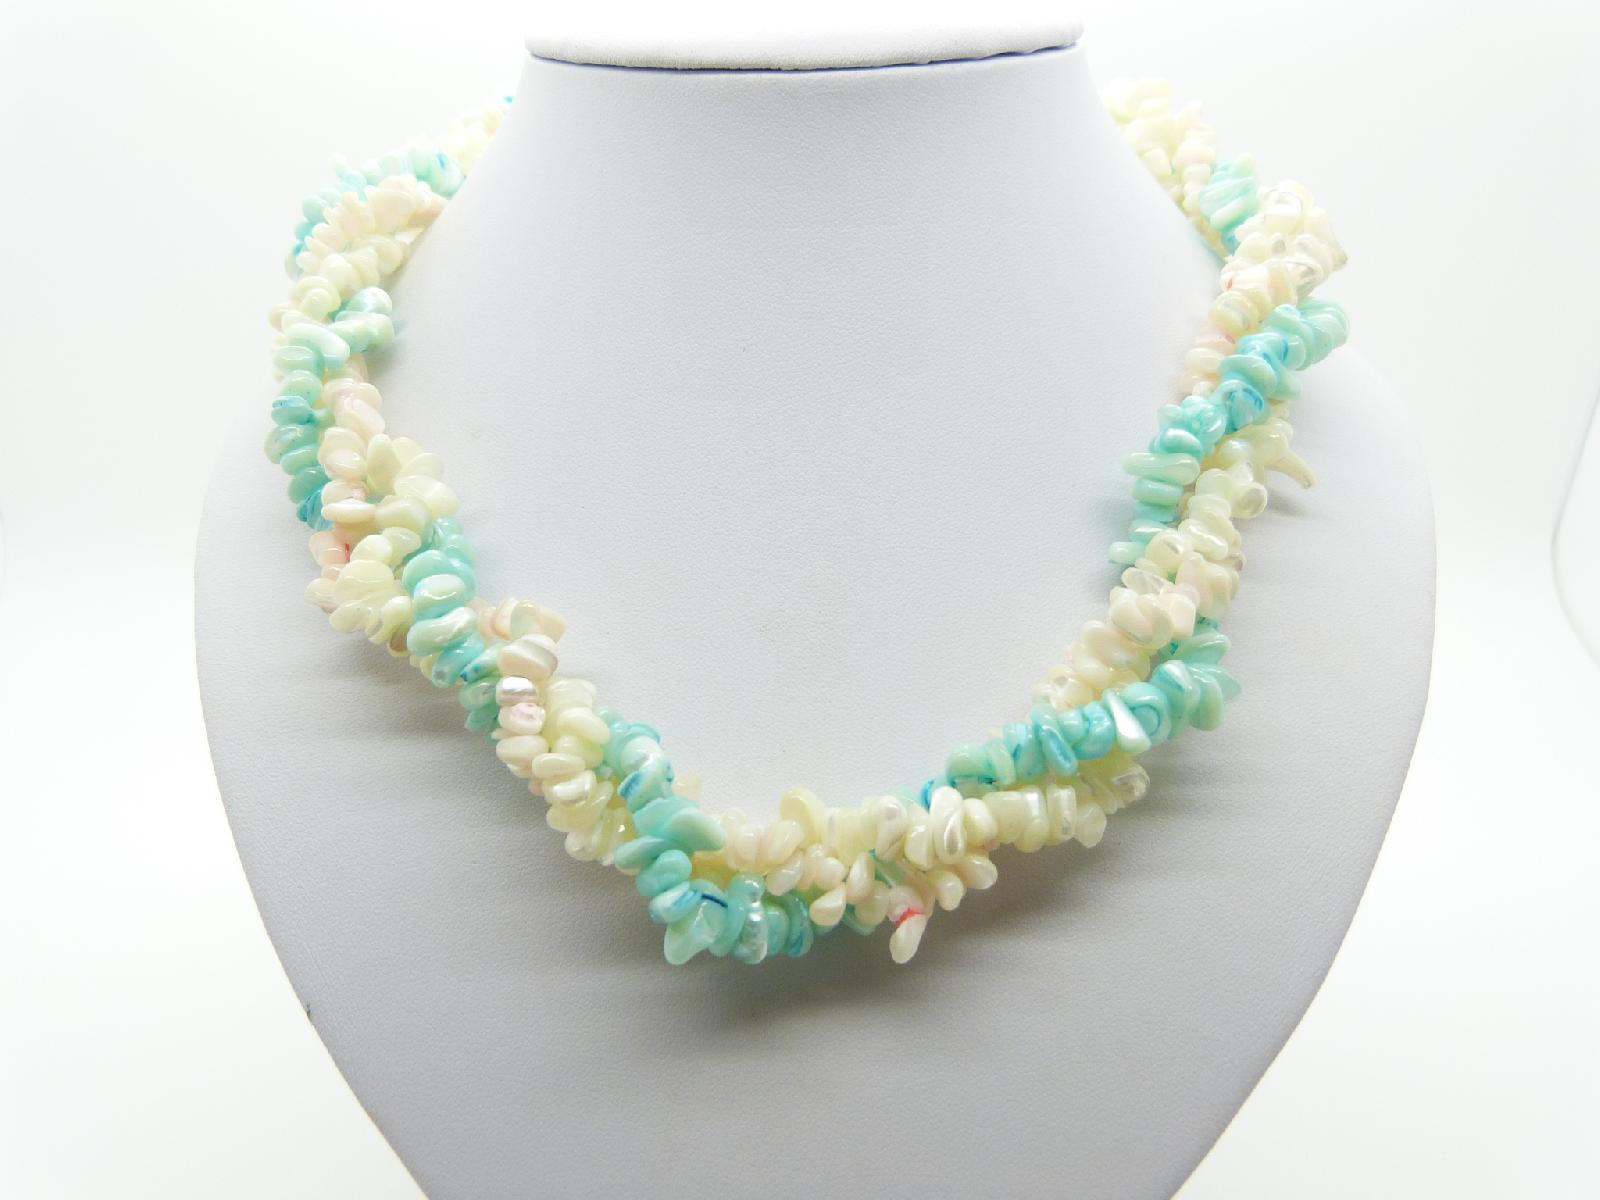 Vintage 50s Fab Three Row Twist Aqua and White Mother of Pearl Bead 55cms Necklace